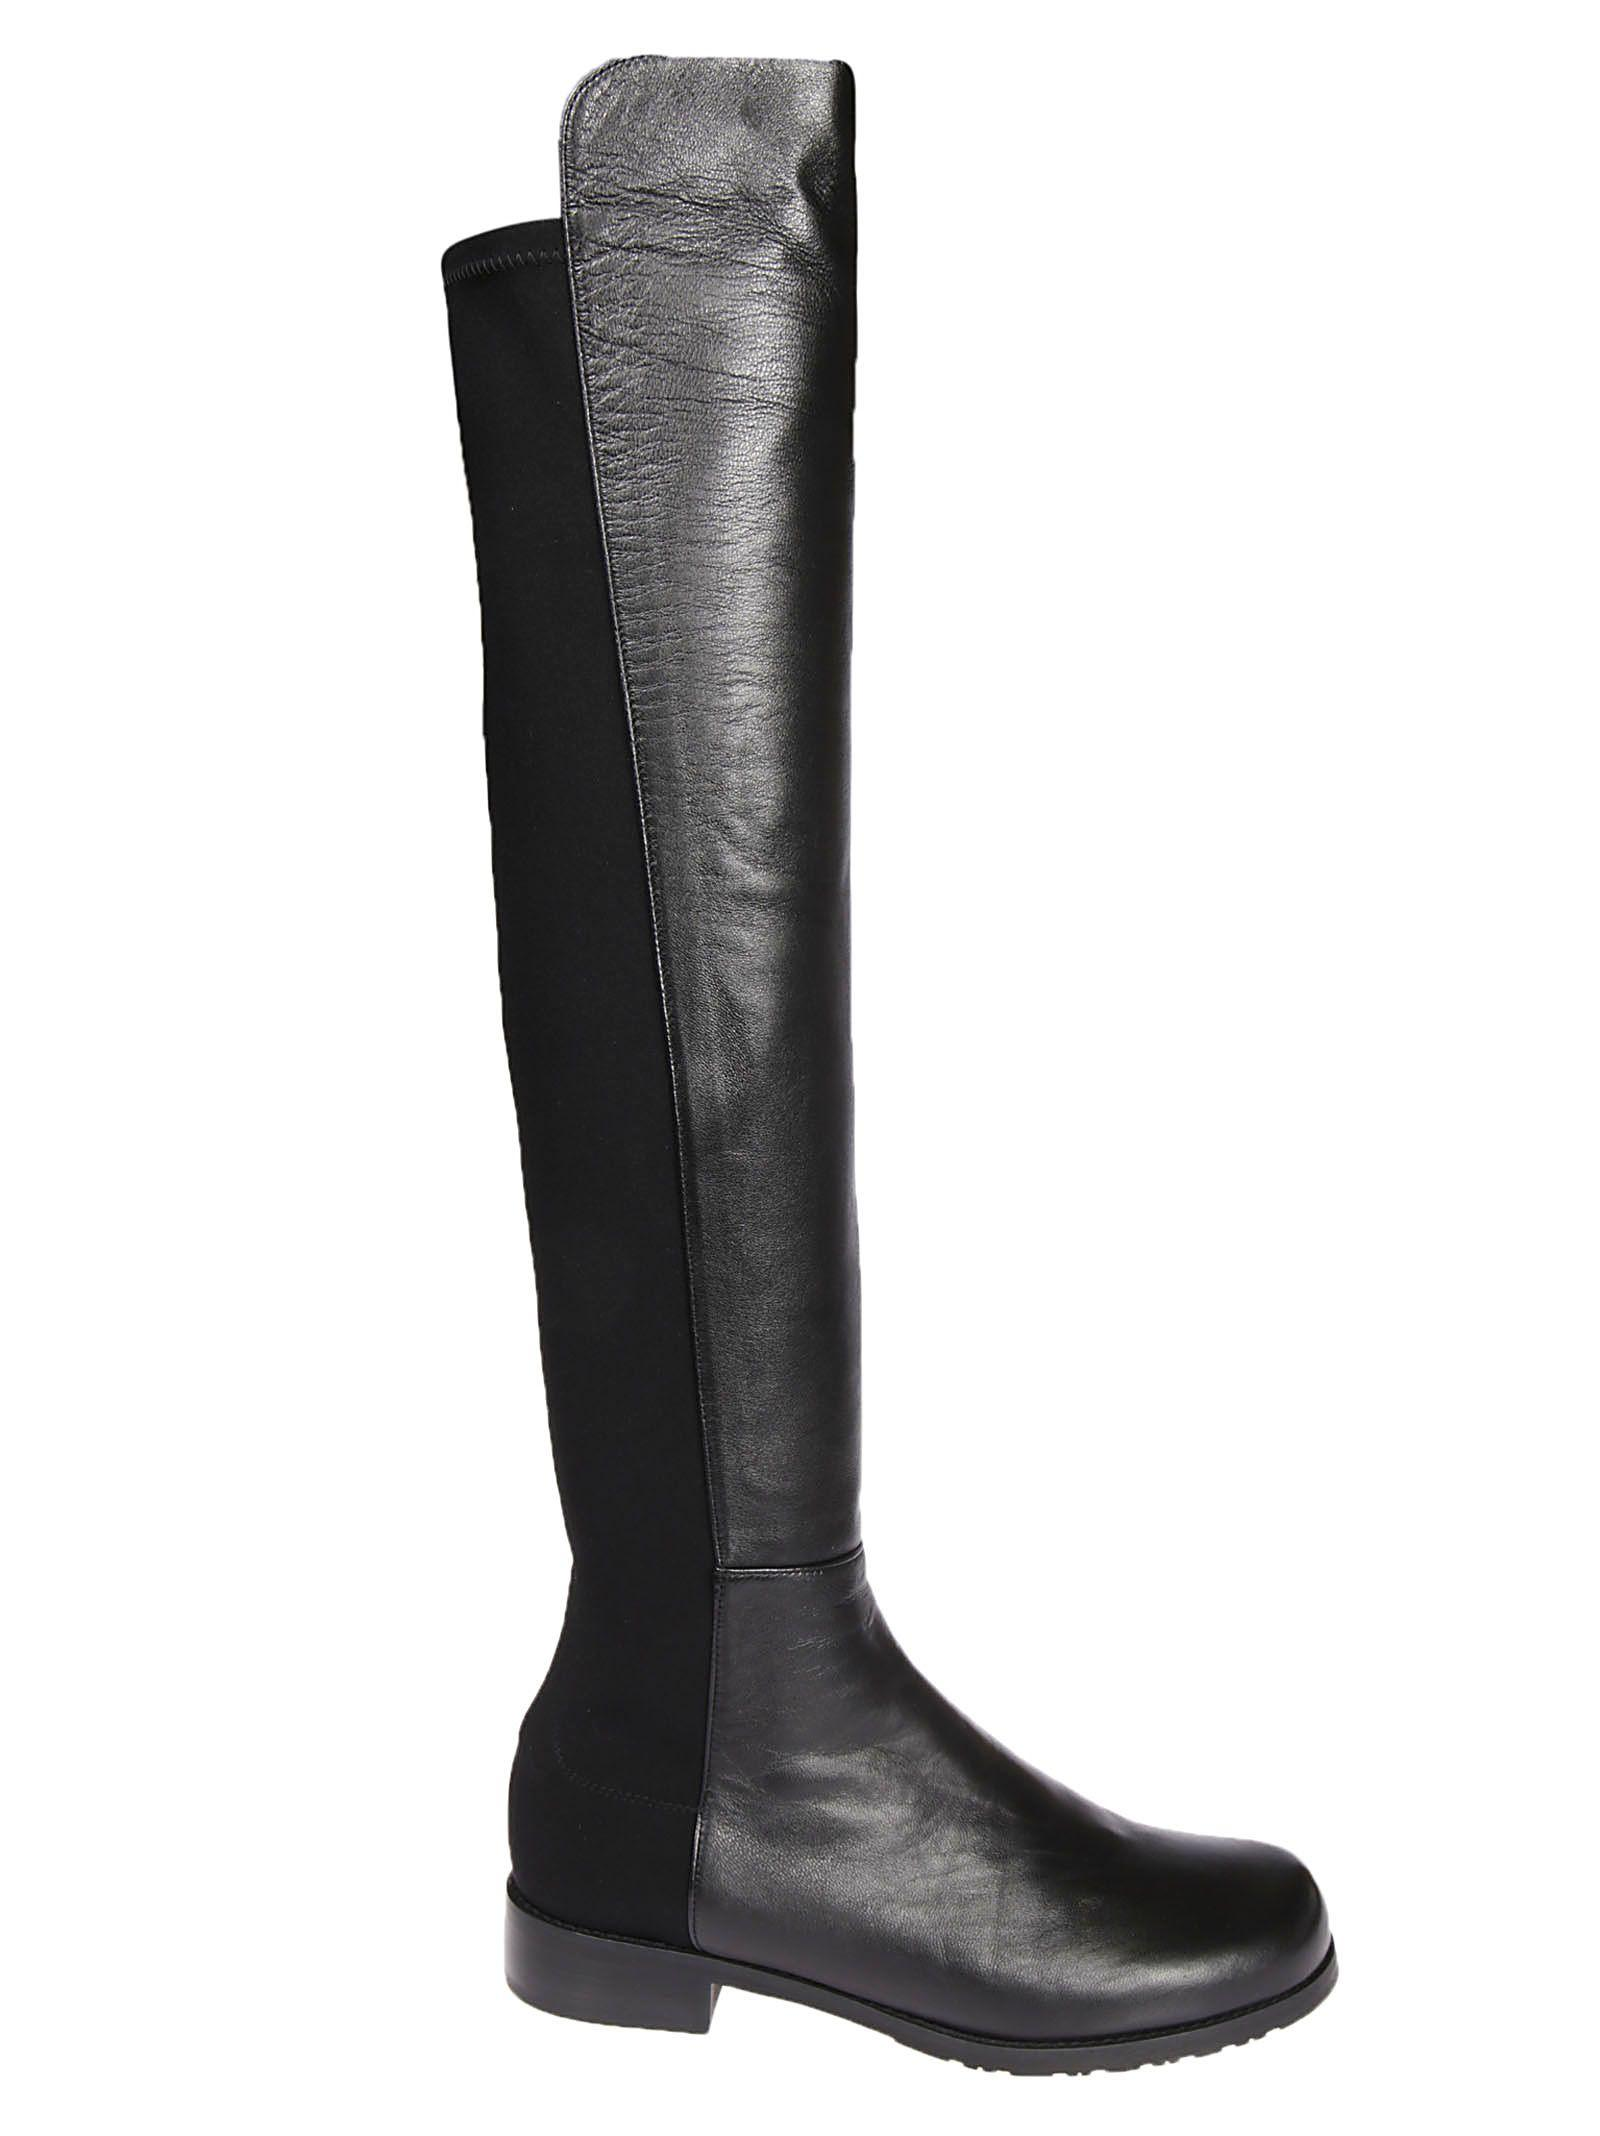 Stuart Weitzman Contrast Over-the-knee Boots In Black